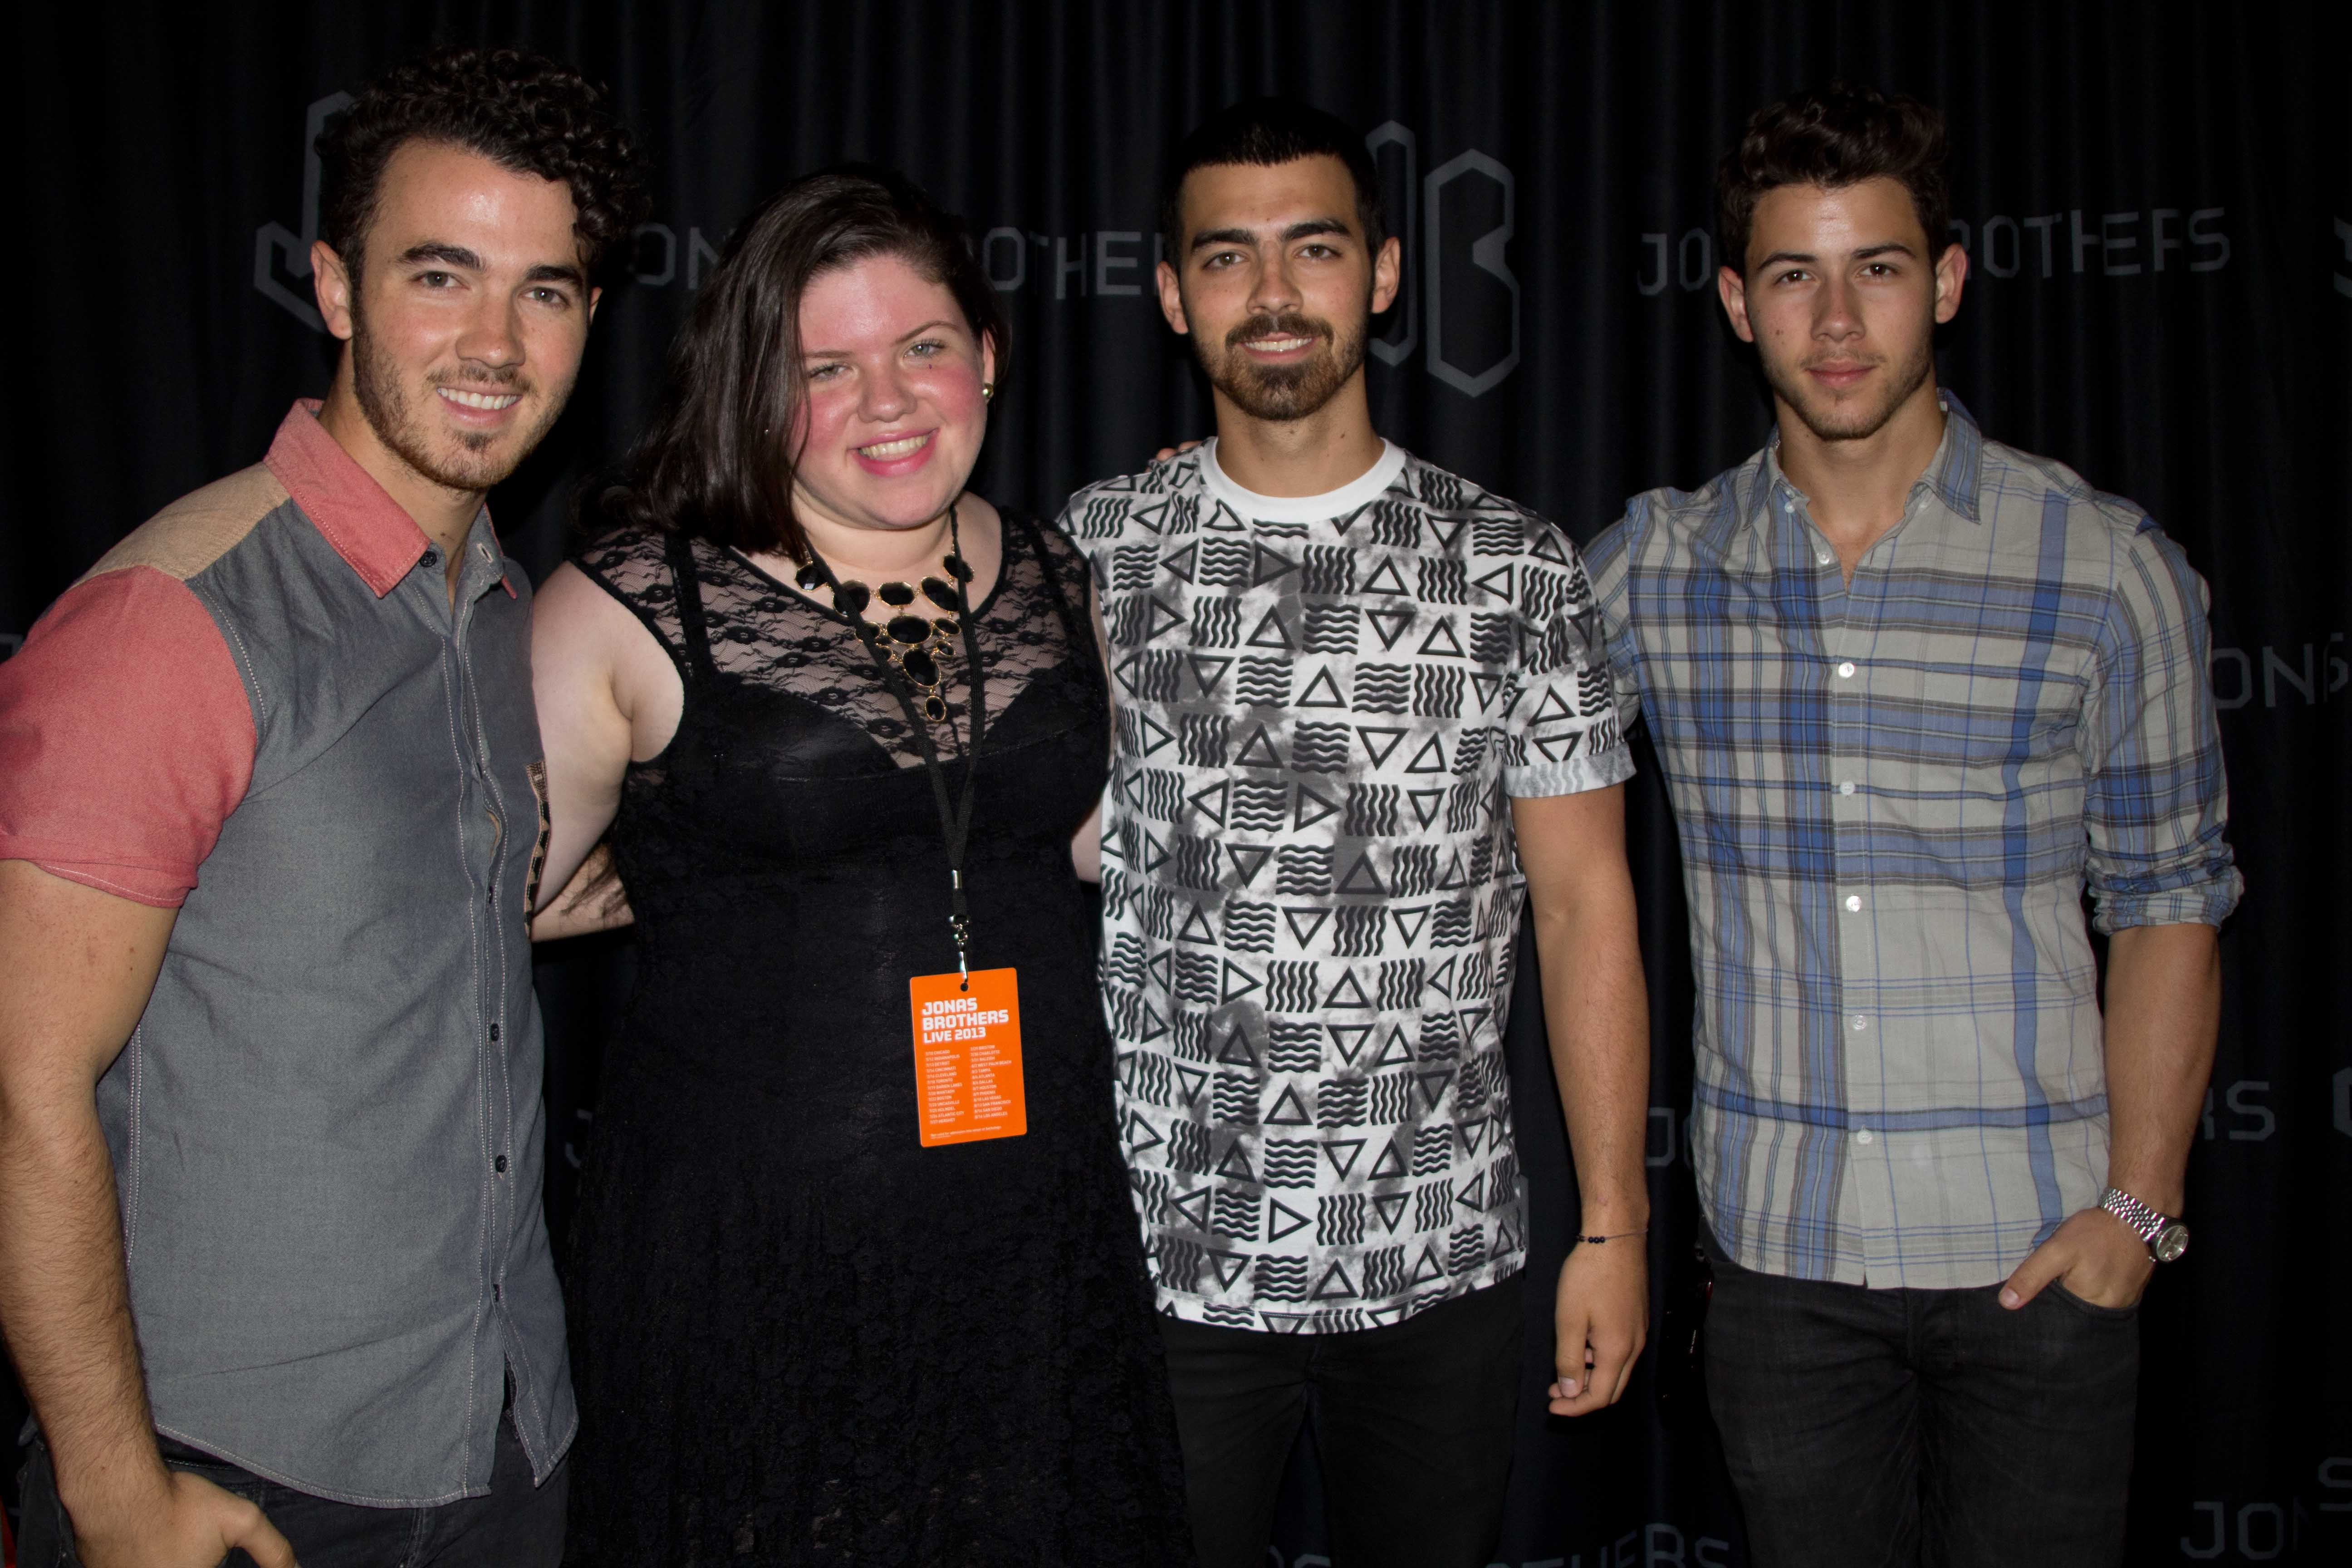 My meet and greet picture from my jonas brothers live tour concert my meet and greet picture from my jonas brothers live tour concert find this pin and more on my real life m4hsunfo